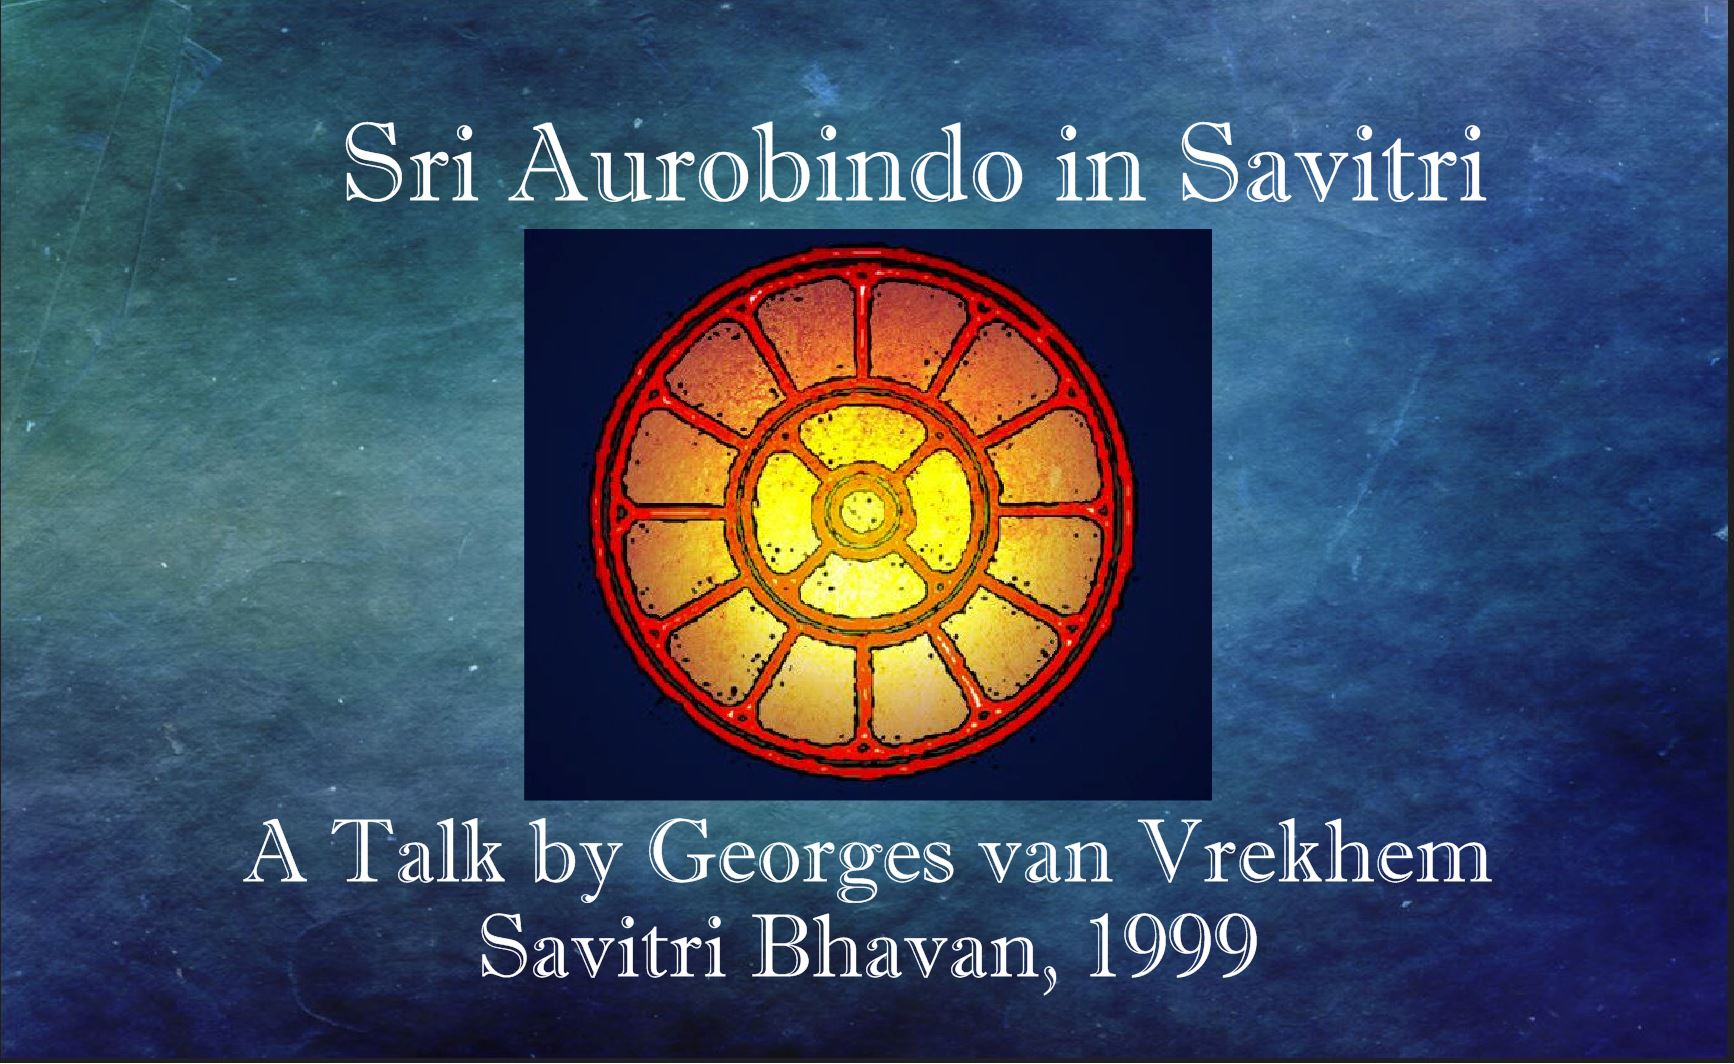 essays writings aurobindo mother Essays writings aurobindo mother quotes by sri aurobindo essays writings aurobindo mother odizohor uhostfull com vedic books sri aurobindo cwsa vol letters on poetry and  essays on the gita.